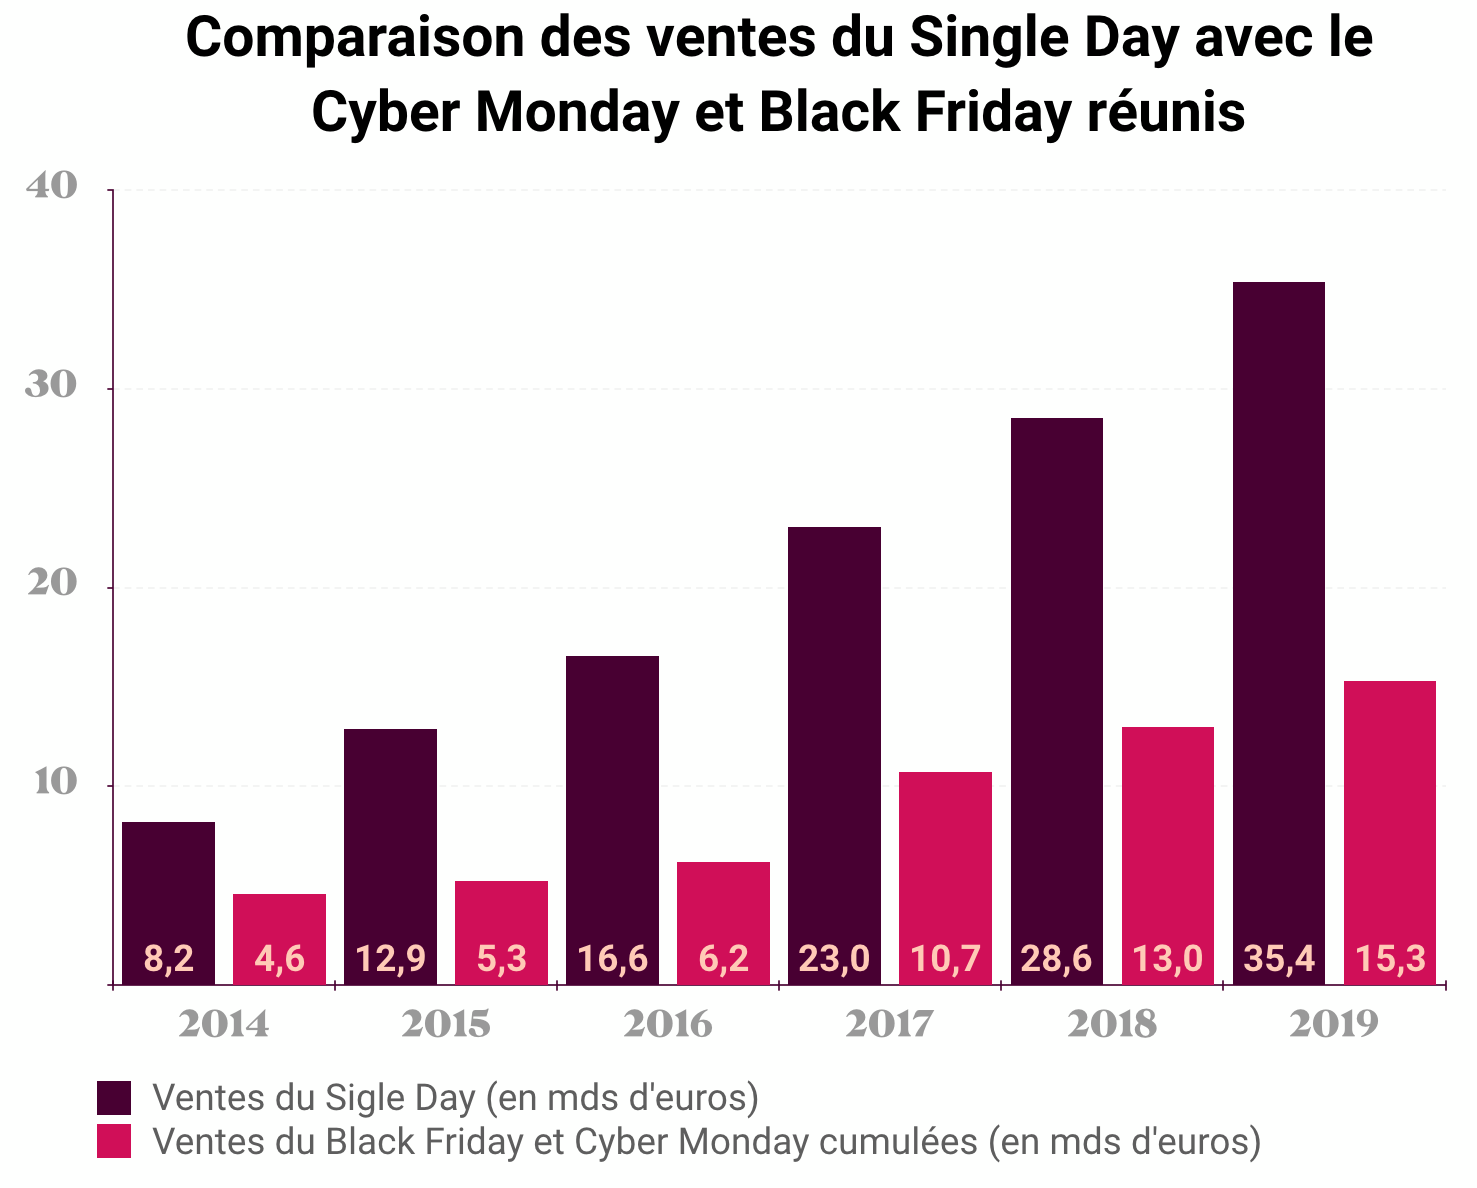 Comparaison des ventes du Single Day avec le Cyber Monday et Black Friday réunis